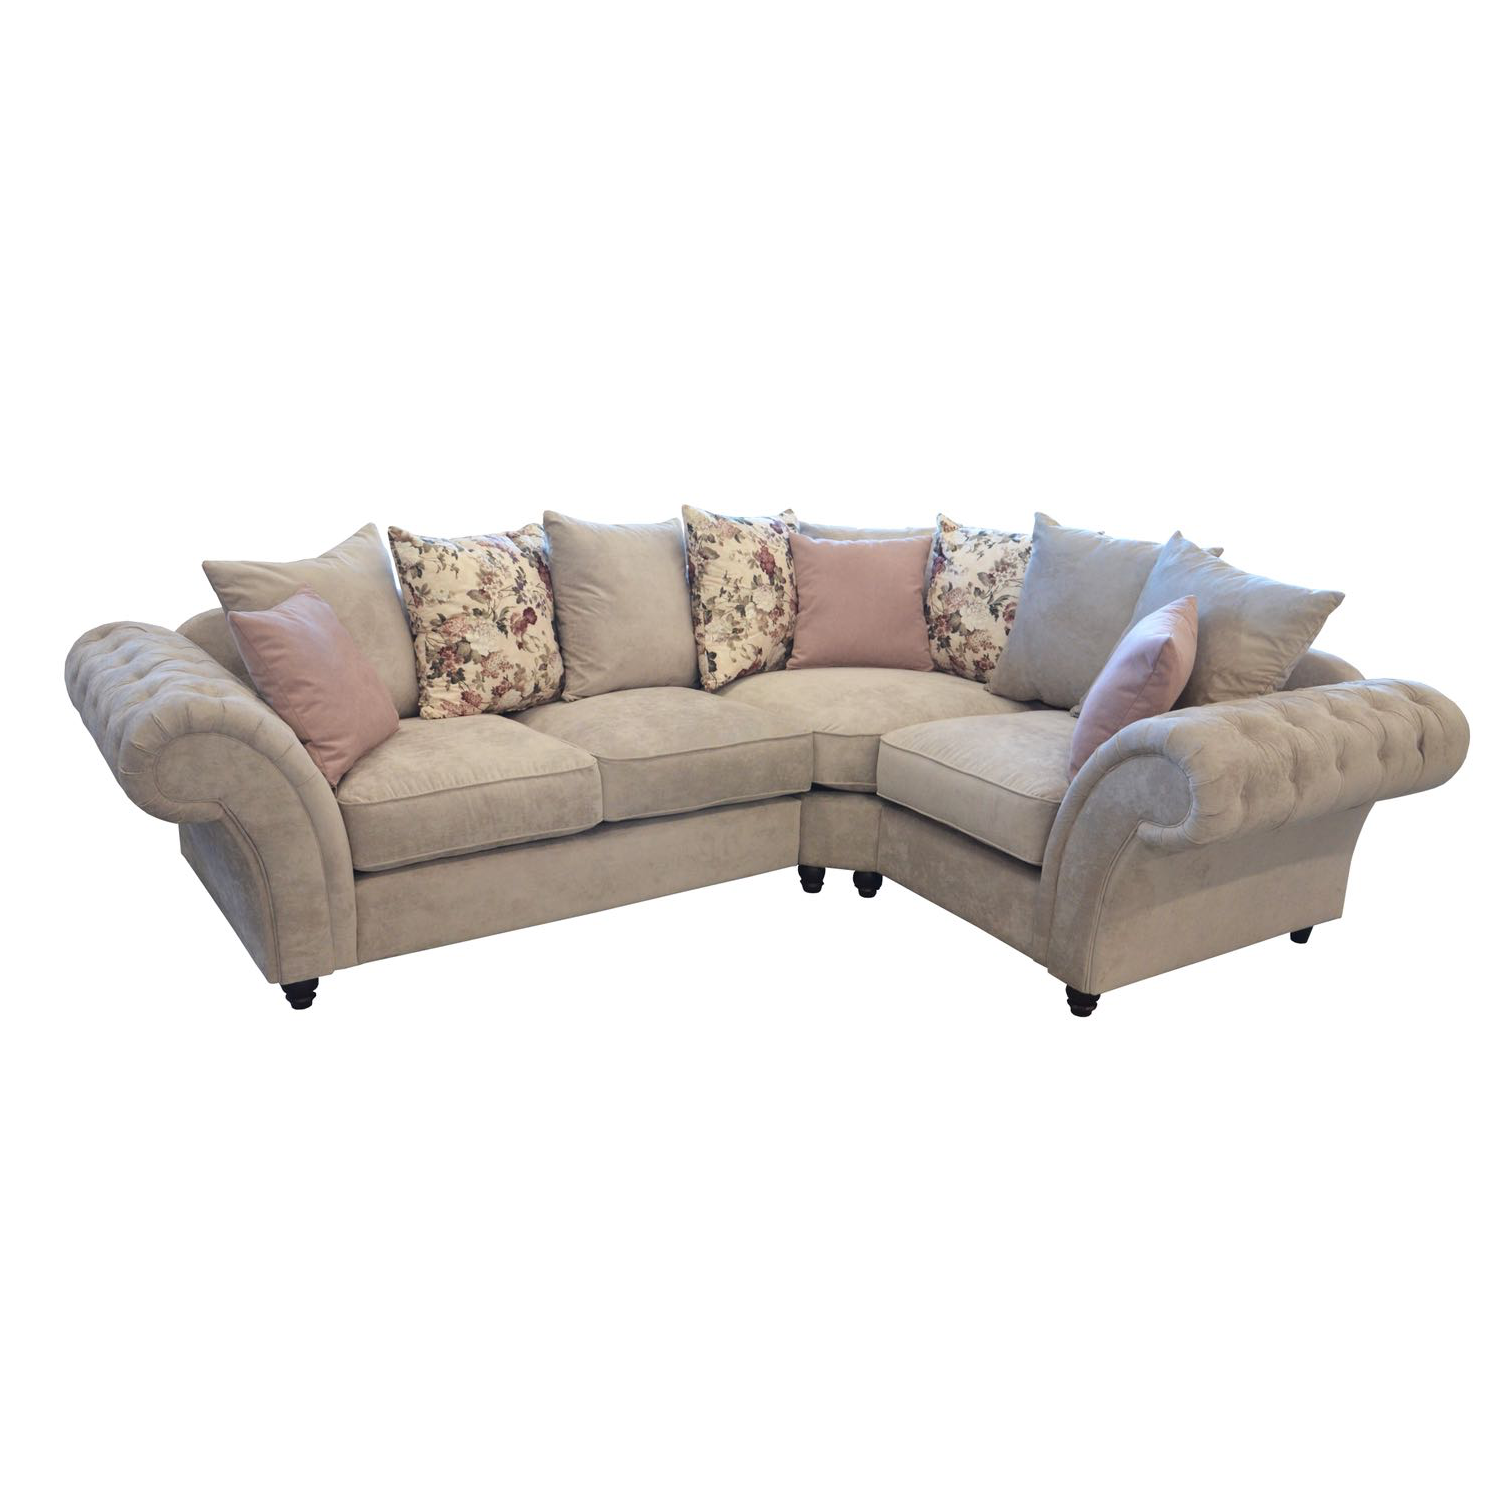 Windsor Chesterfield Fabric Right Hand Corner Sofa in Stone Just Sit On